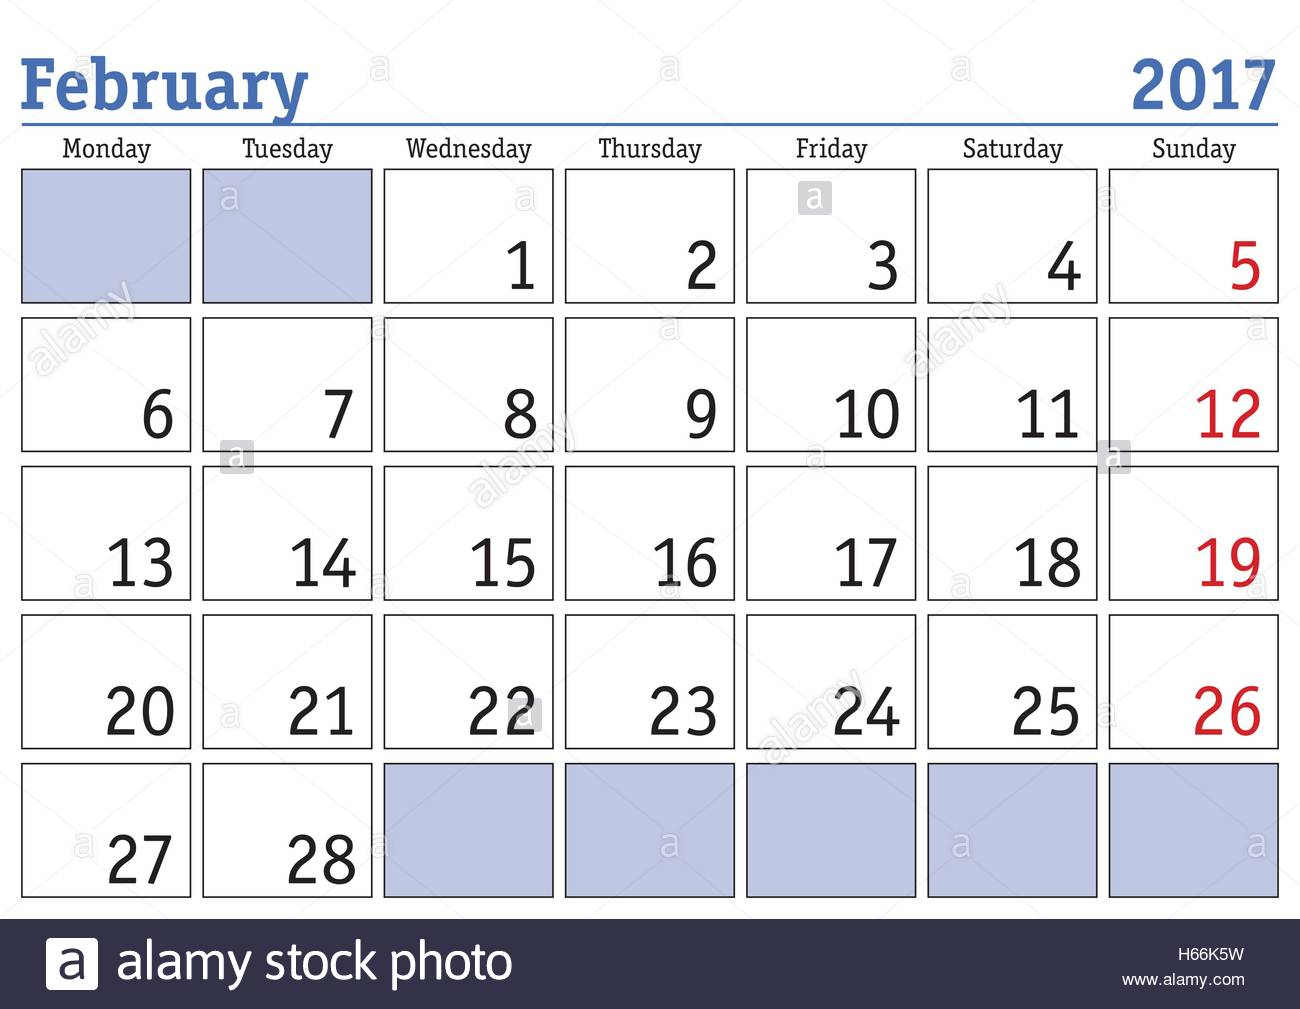 image about Printable Calendar Feb. named Very simple electronic calendar for february 2017. Vector printable